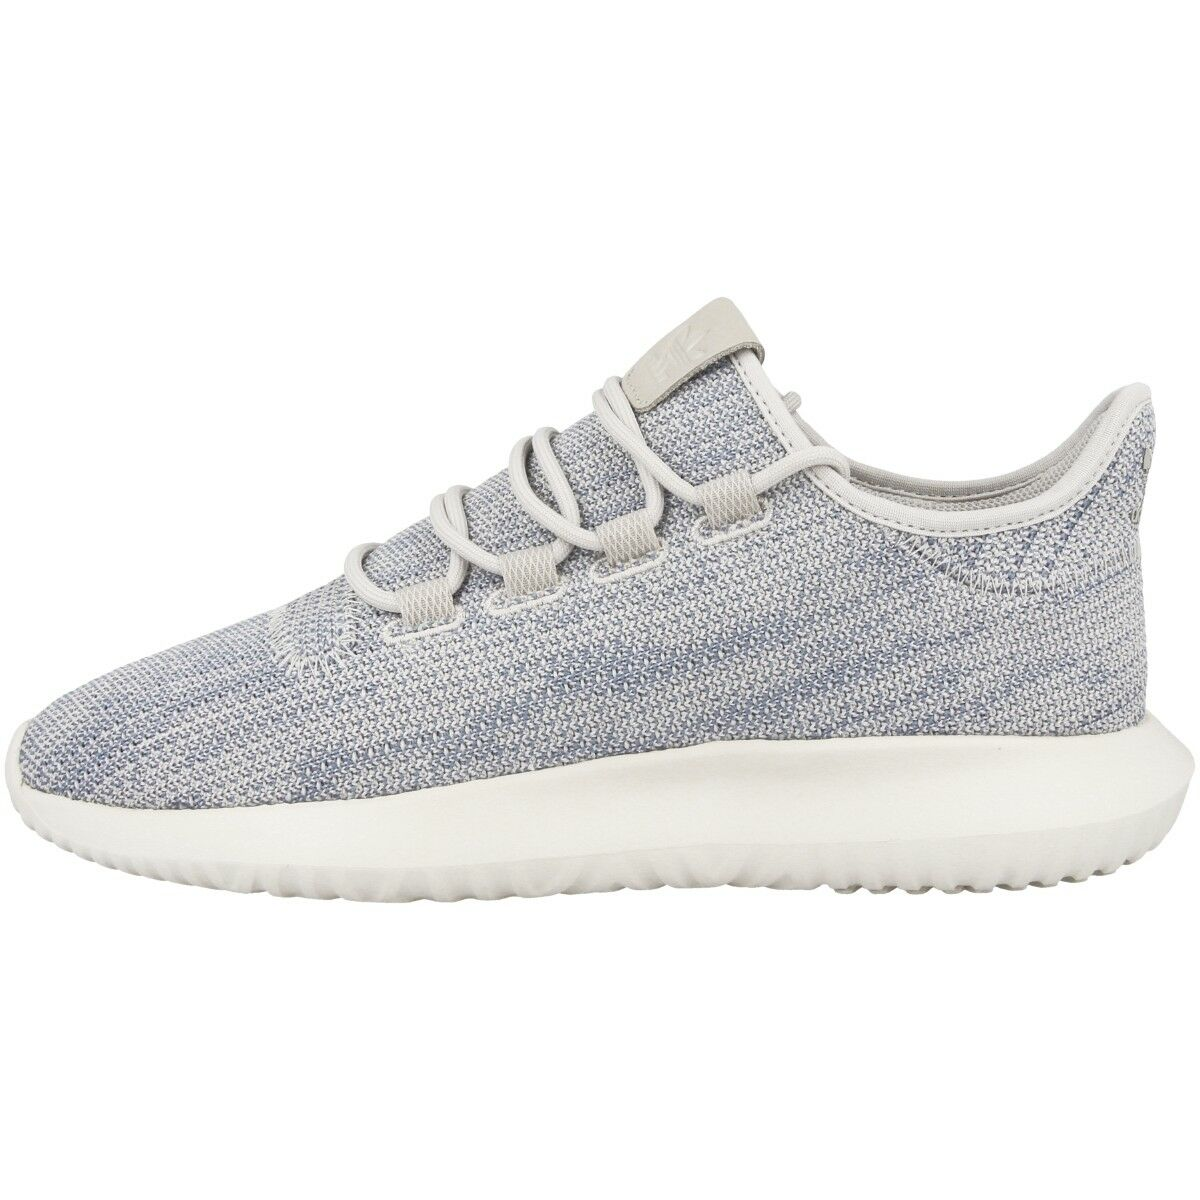 Adidas Tubular Shadow CK Men Schuhe Sneaker Laufschuhe brown blue white AC8794